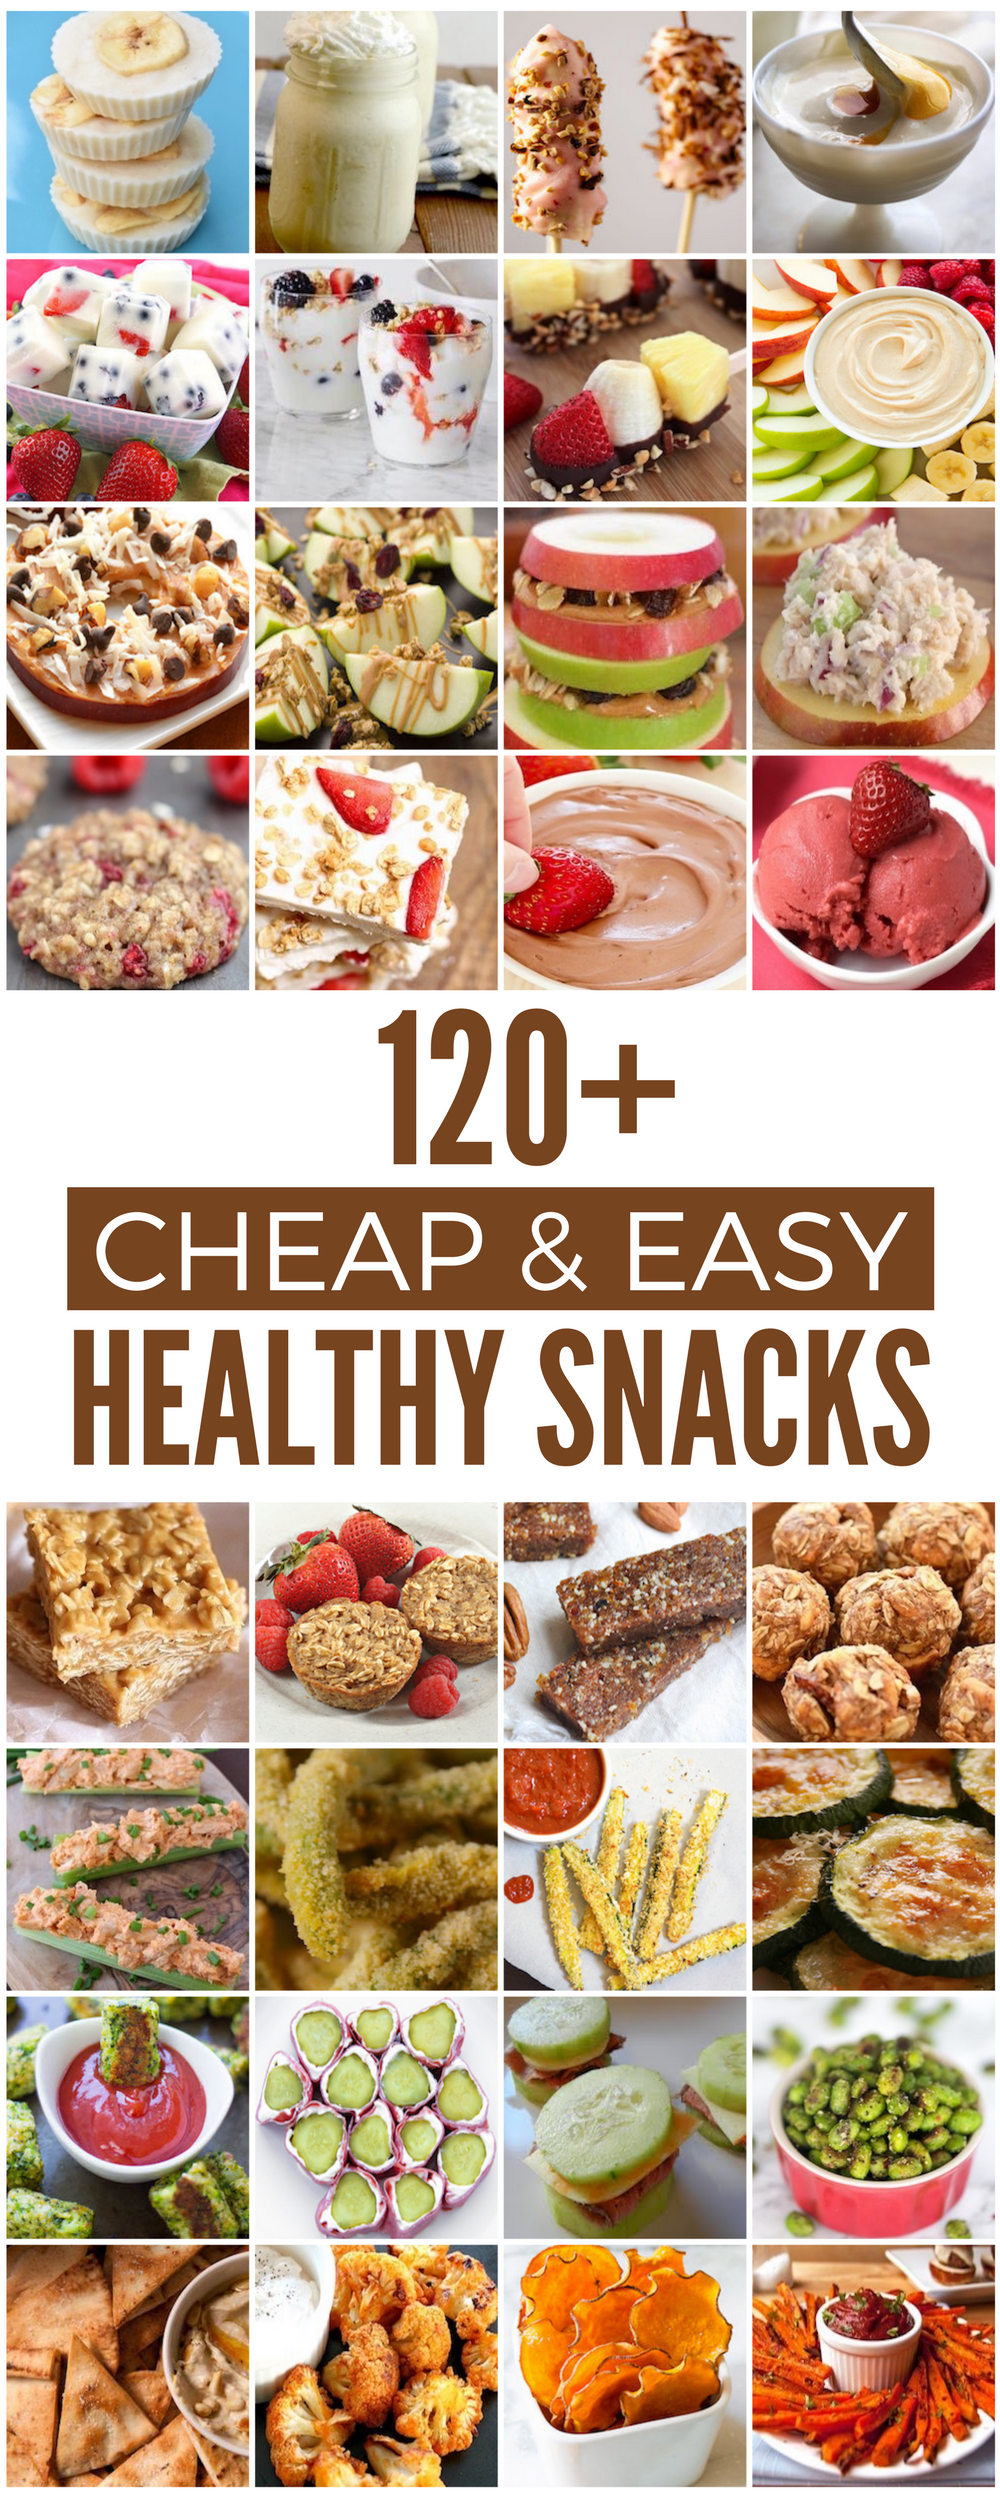 120 Cheap & Healthy Snacks Shares Eat better for less with these cheap and healthy snack recipes. Whether you are looking for kid-friendly snacks, low calorie snacks or low carb snacks, there are healthy snacks for everyone here! Fruit, Yogurt & Frozen Healthy Snacks Frozen Banana Yogurt Bites from Eats Amazing Greek Yogurt Breakfast Bark from Go Eat And Repeat … Cheap & Healthy Snacks Shares Eat better for less with these cheap and healthy snack recipes. Whether you are looking for kid-friendly snacks, low calorie snacks or low carb snacks, there are healthy snacks for everyone here! Fruit, Yogurt & Frozen Healthy Snacks Frozen Banana Yogurt Bites from Eats Amazing Greek Yogurt Breakfast Bark from Go Eat And Repea